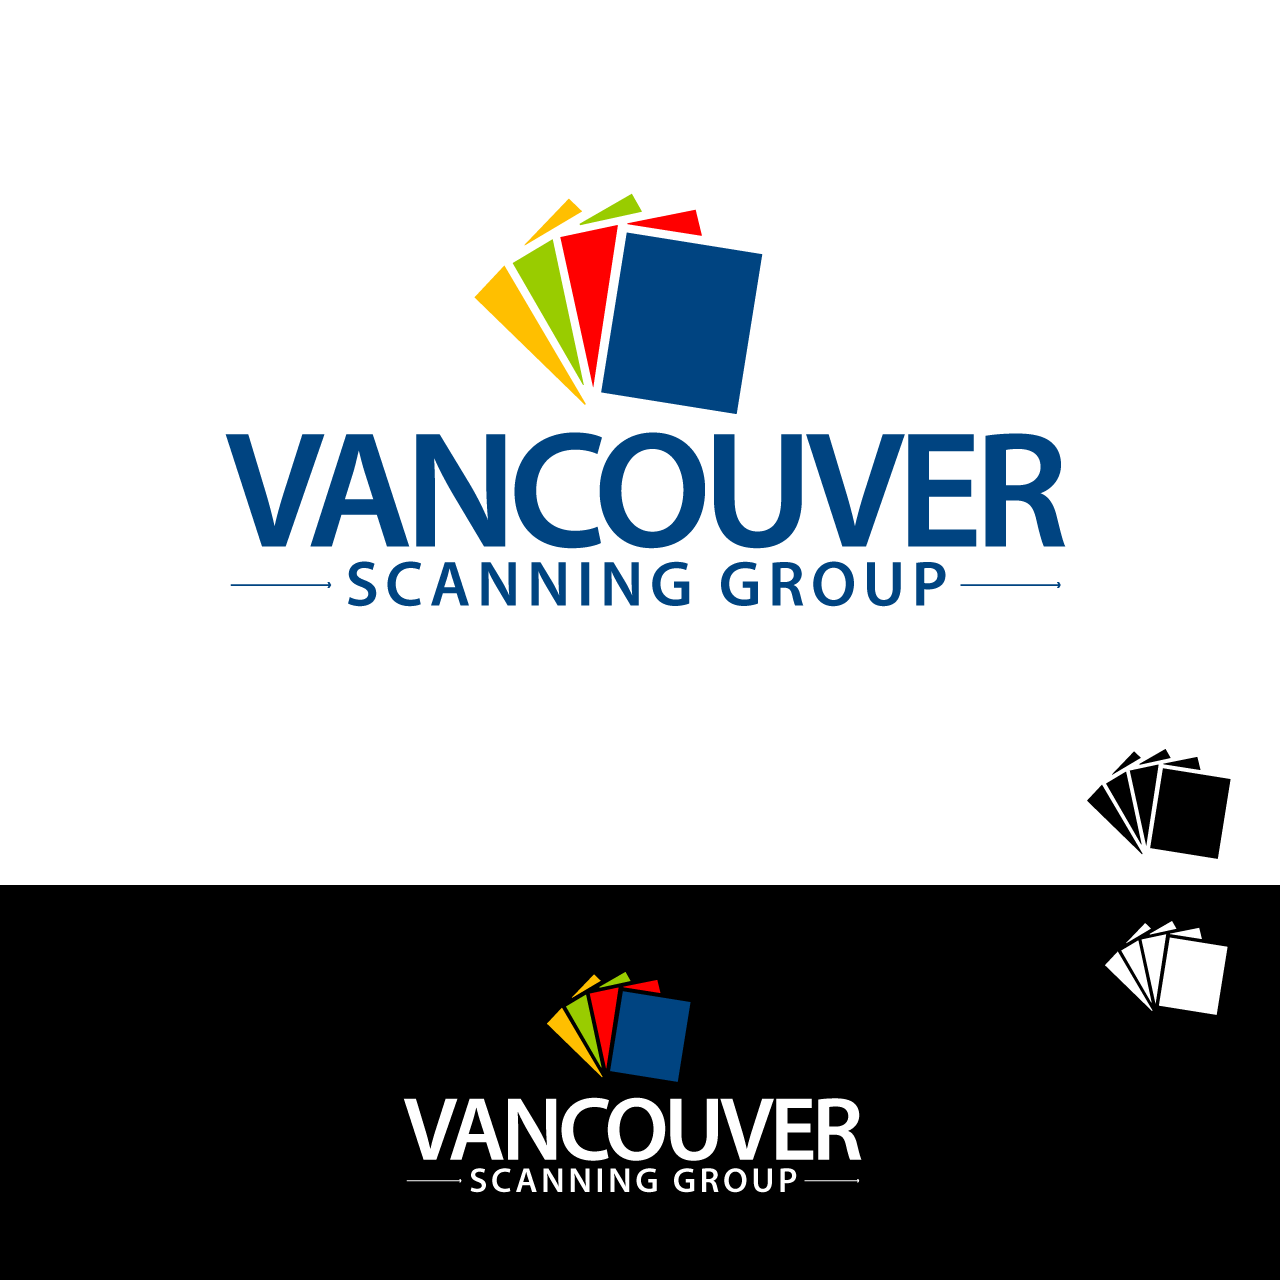 Logo Design by umxca - Entry No. 17 in the Logo Design Contest Vancouver Scanning Group.